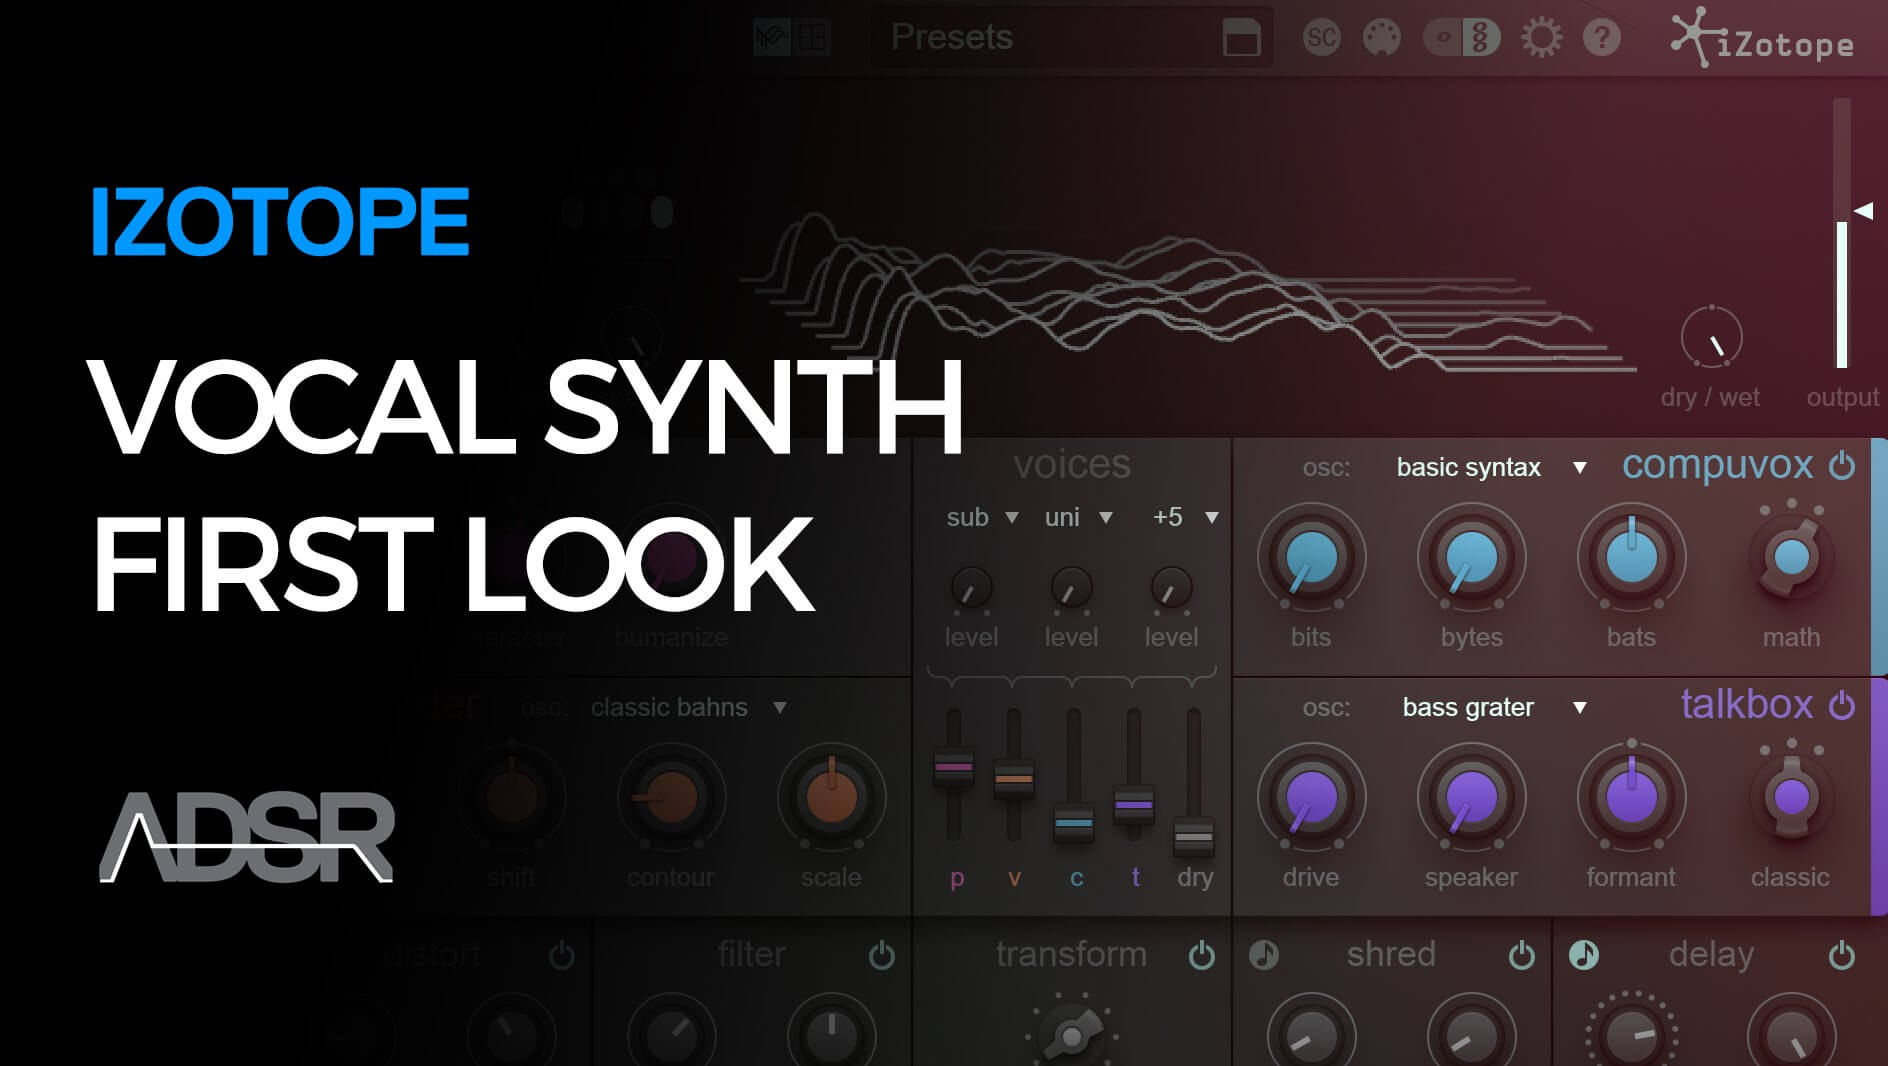 iZotope VocalSynth - First Look